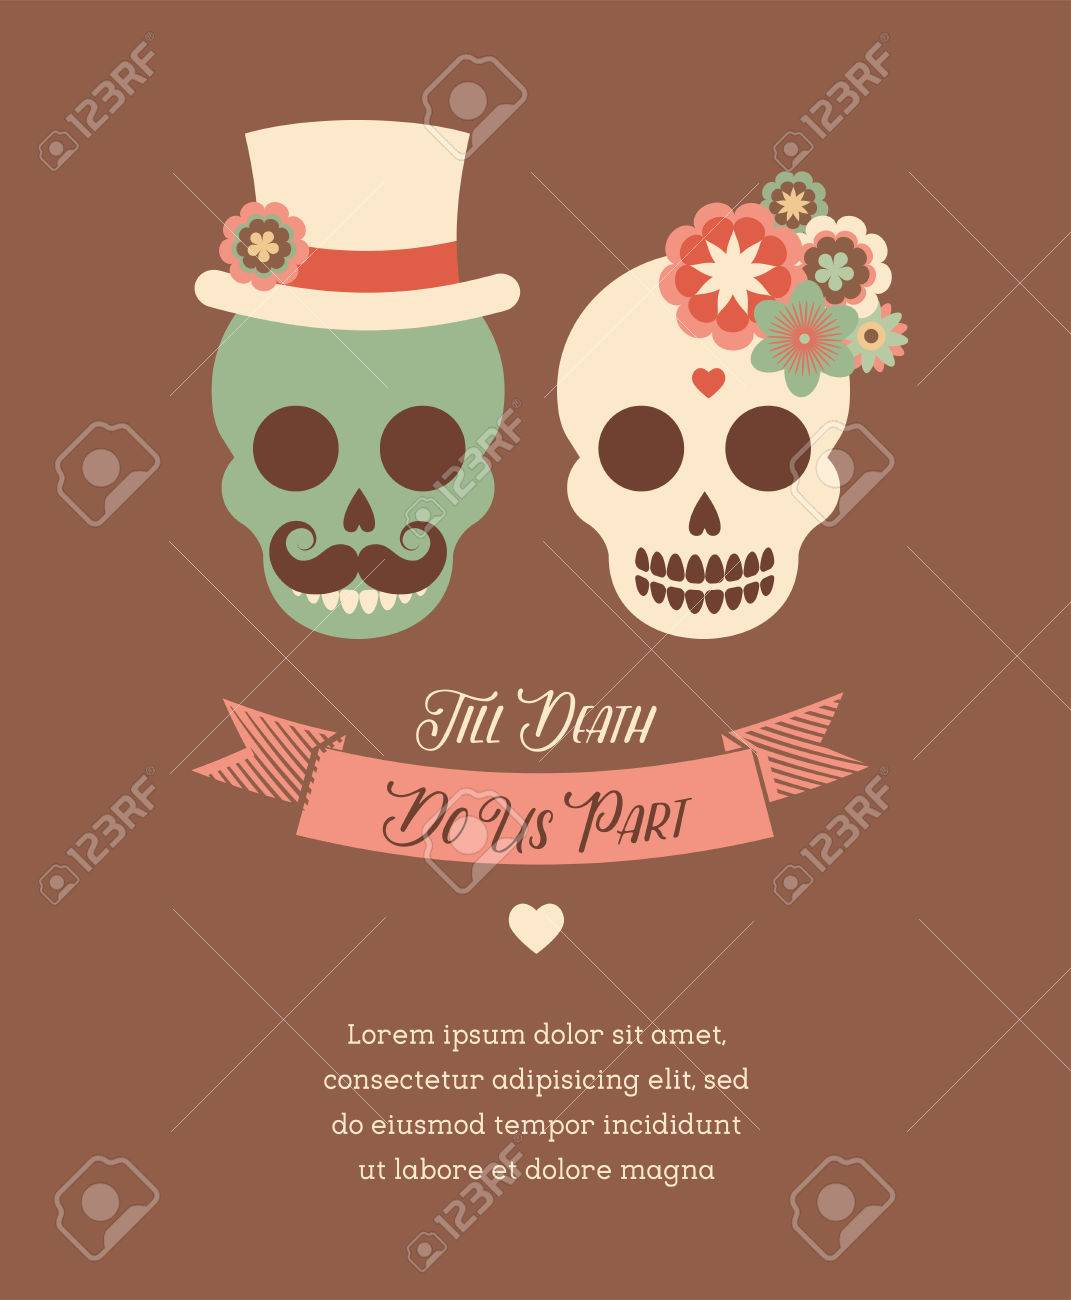 Mexican Wedding Invitation With Two Cute Hipster Skulls Royalty Free